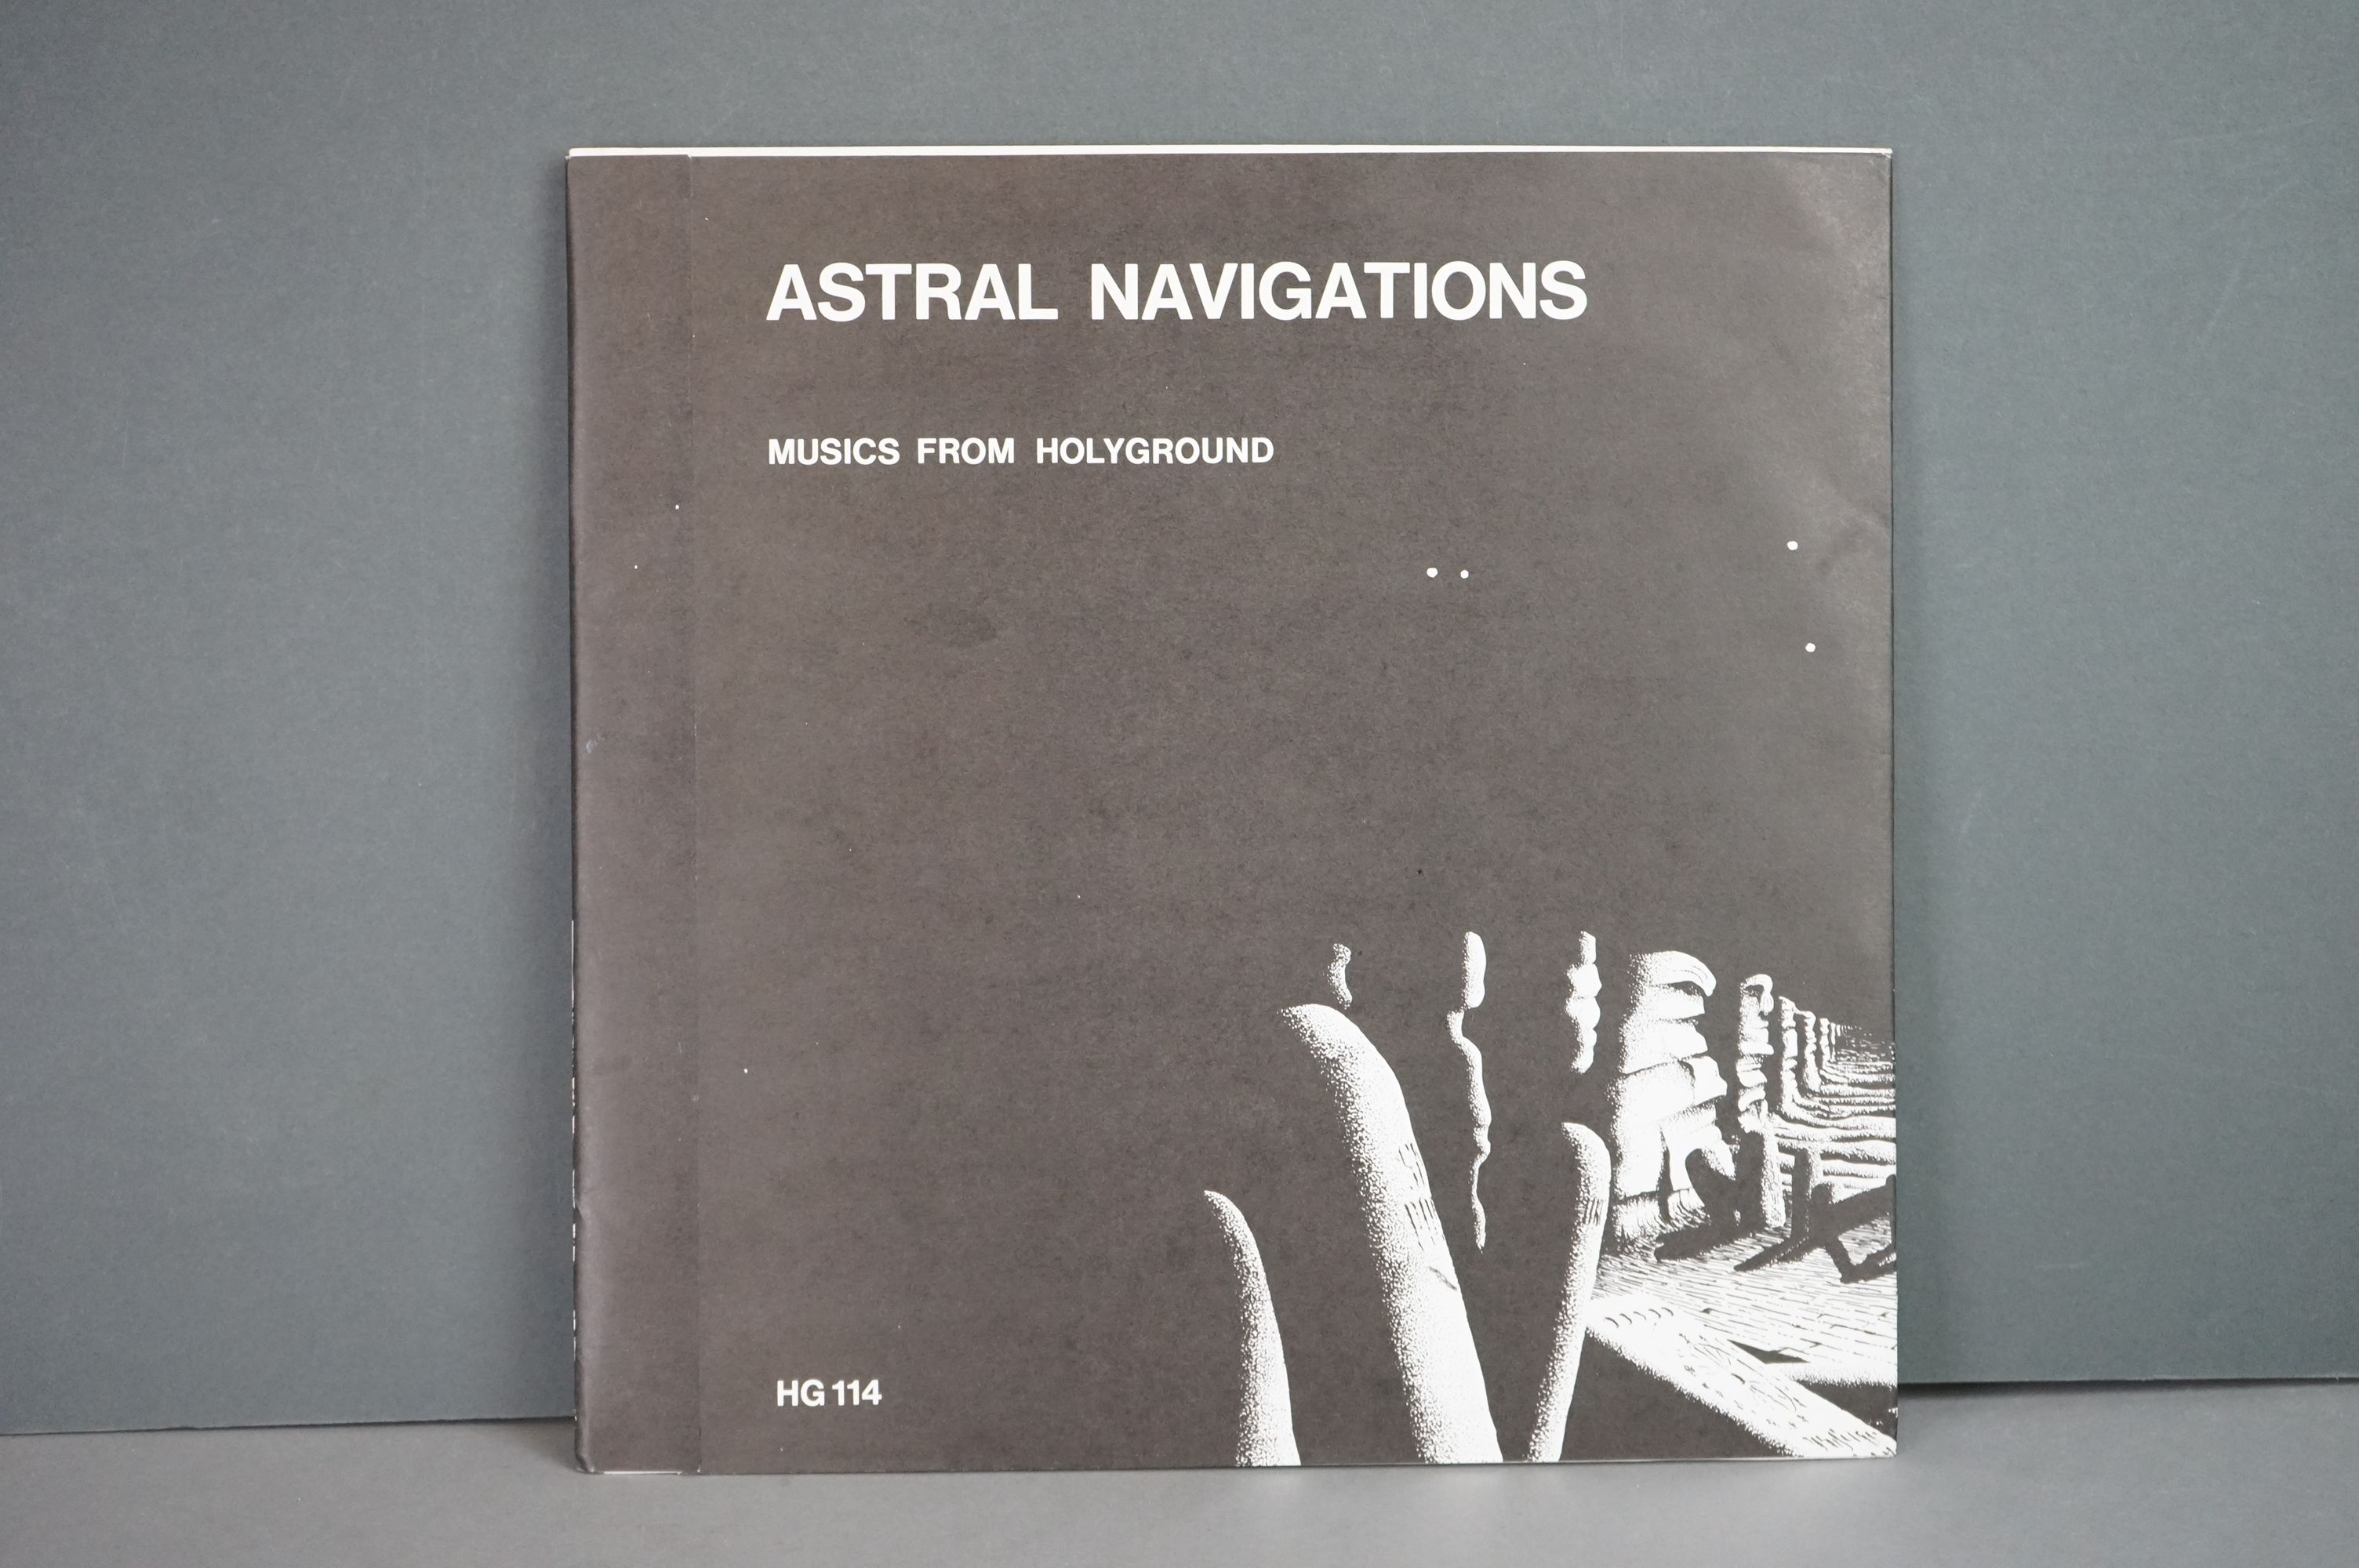 Vinyl - Lightyears Away / Thundermother ?? Astral Navigations (HG 114) numbered Ltd Edition